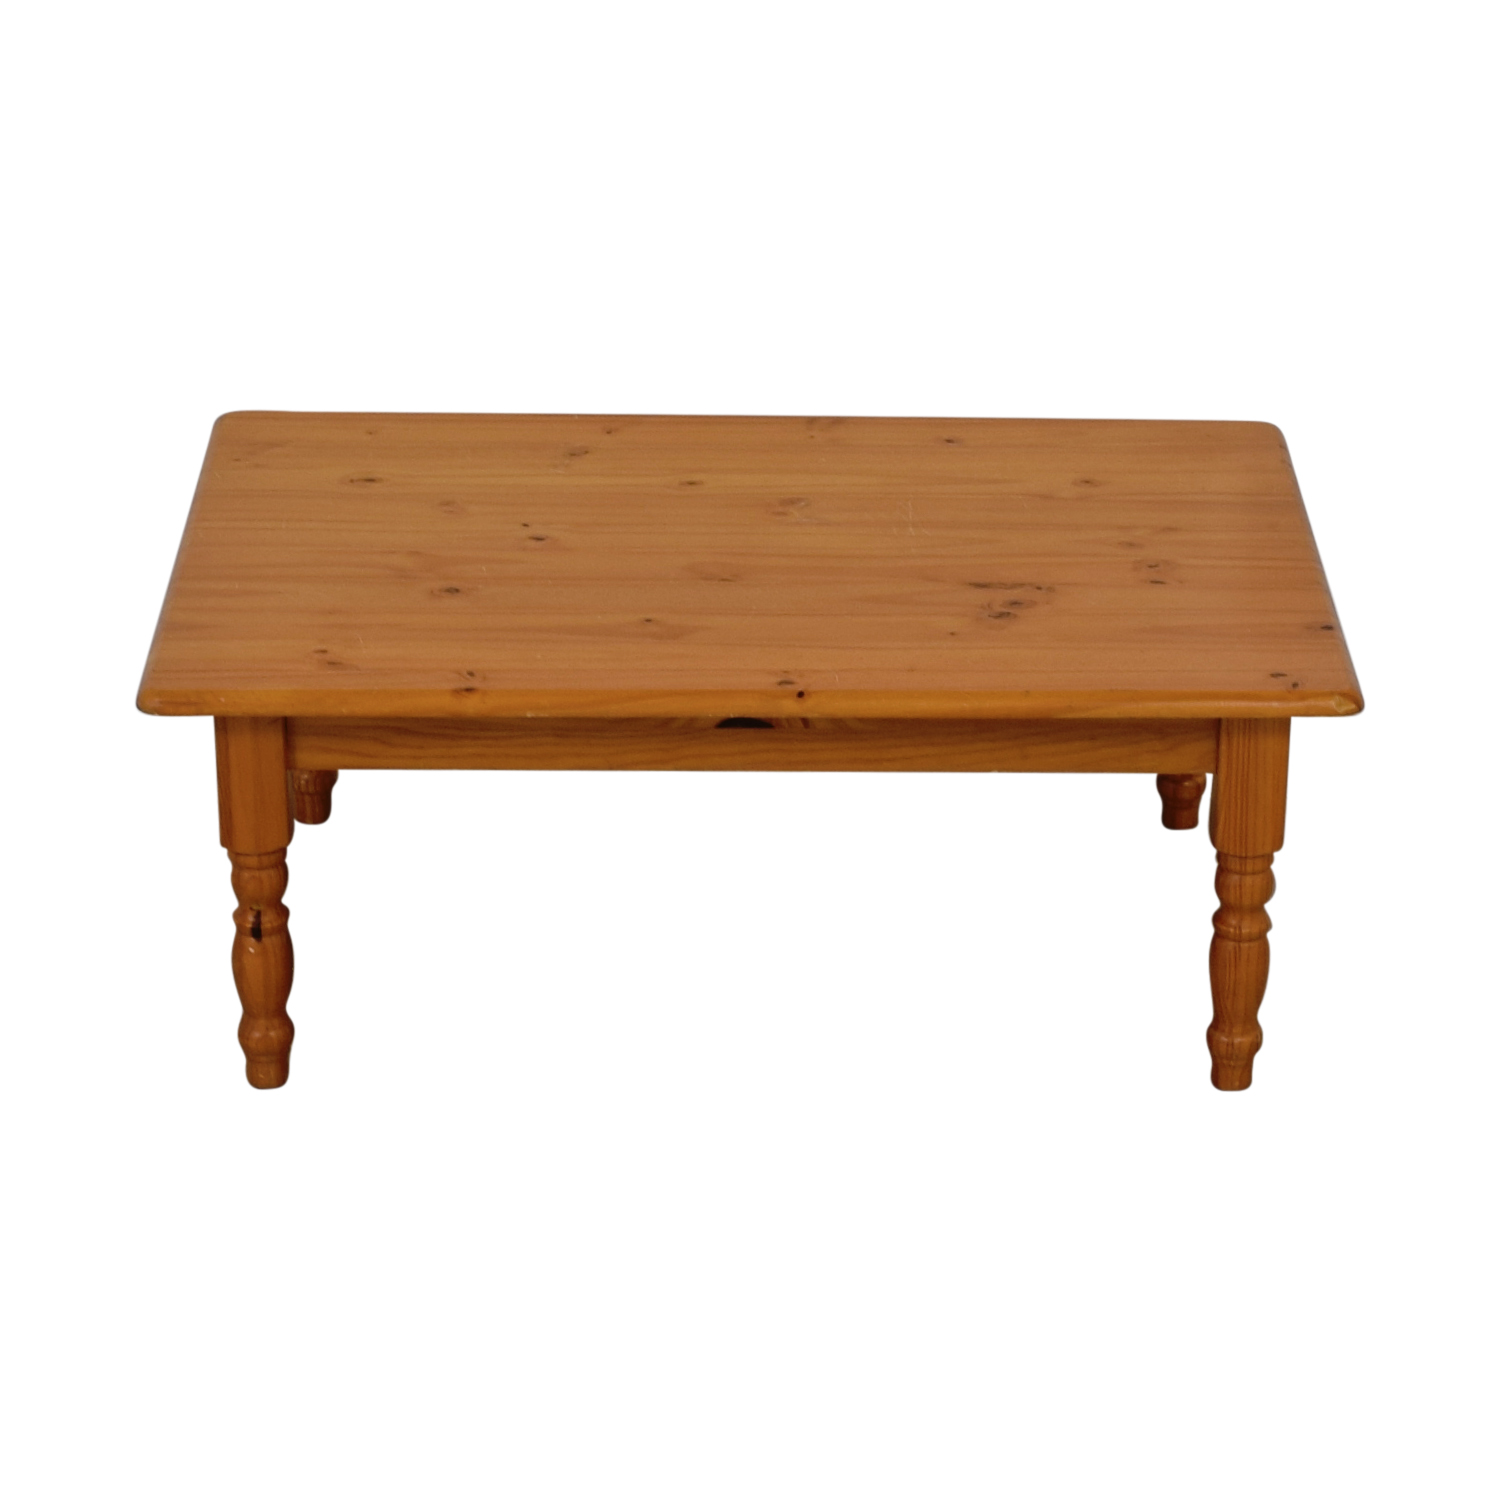 Gothic Cabinet Craft Gothic Cabinet Craft Natural Wood Coffee Table dimensions